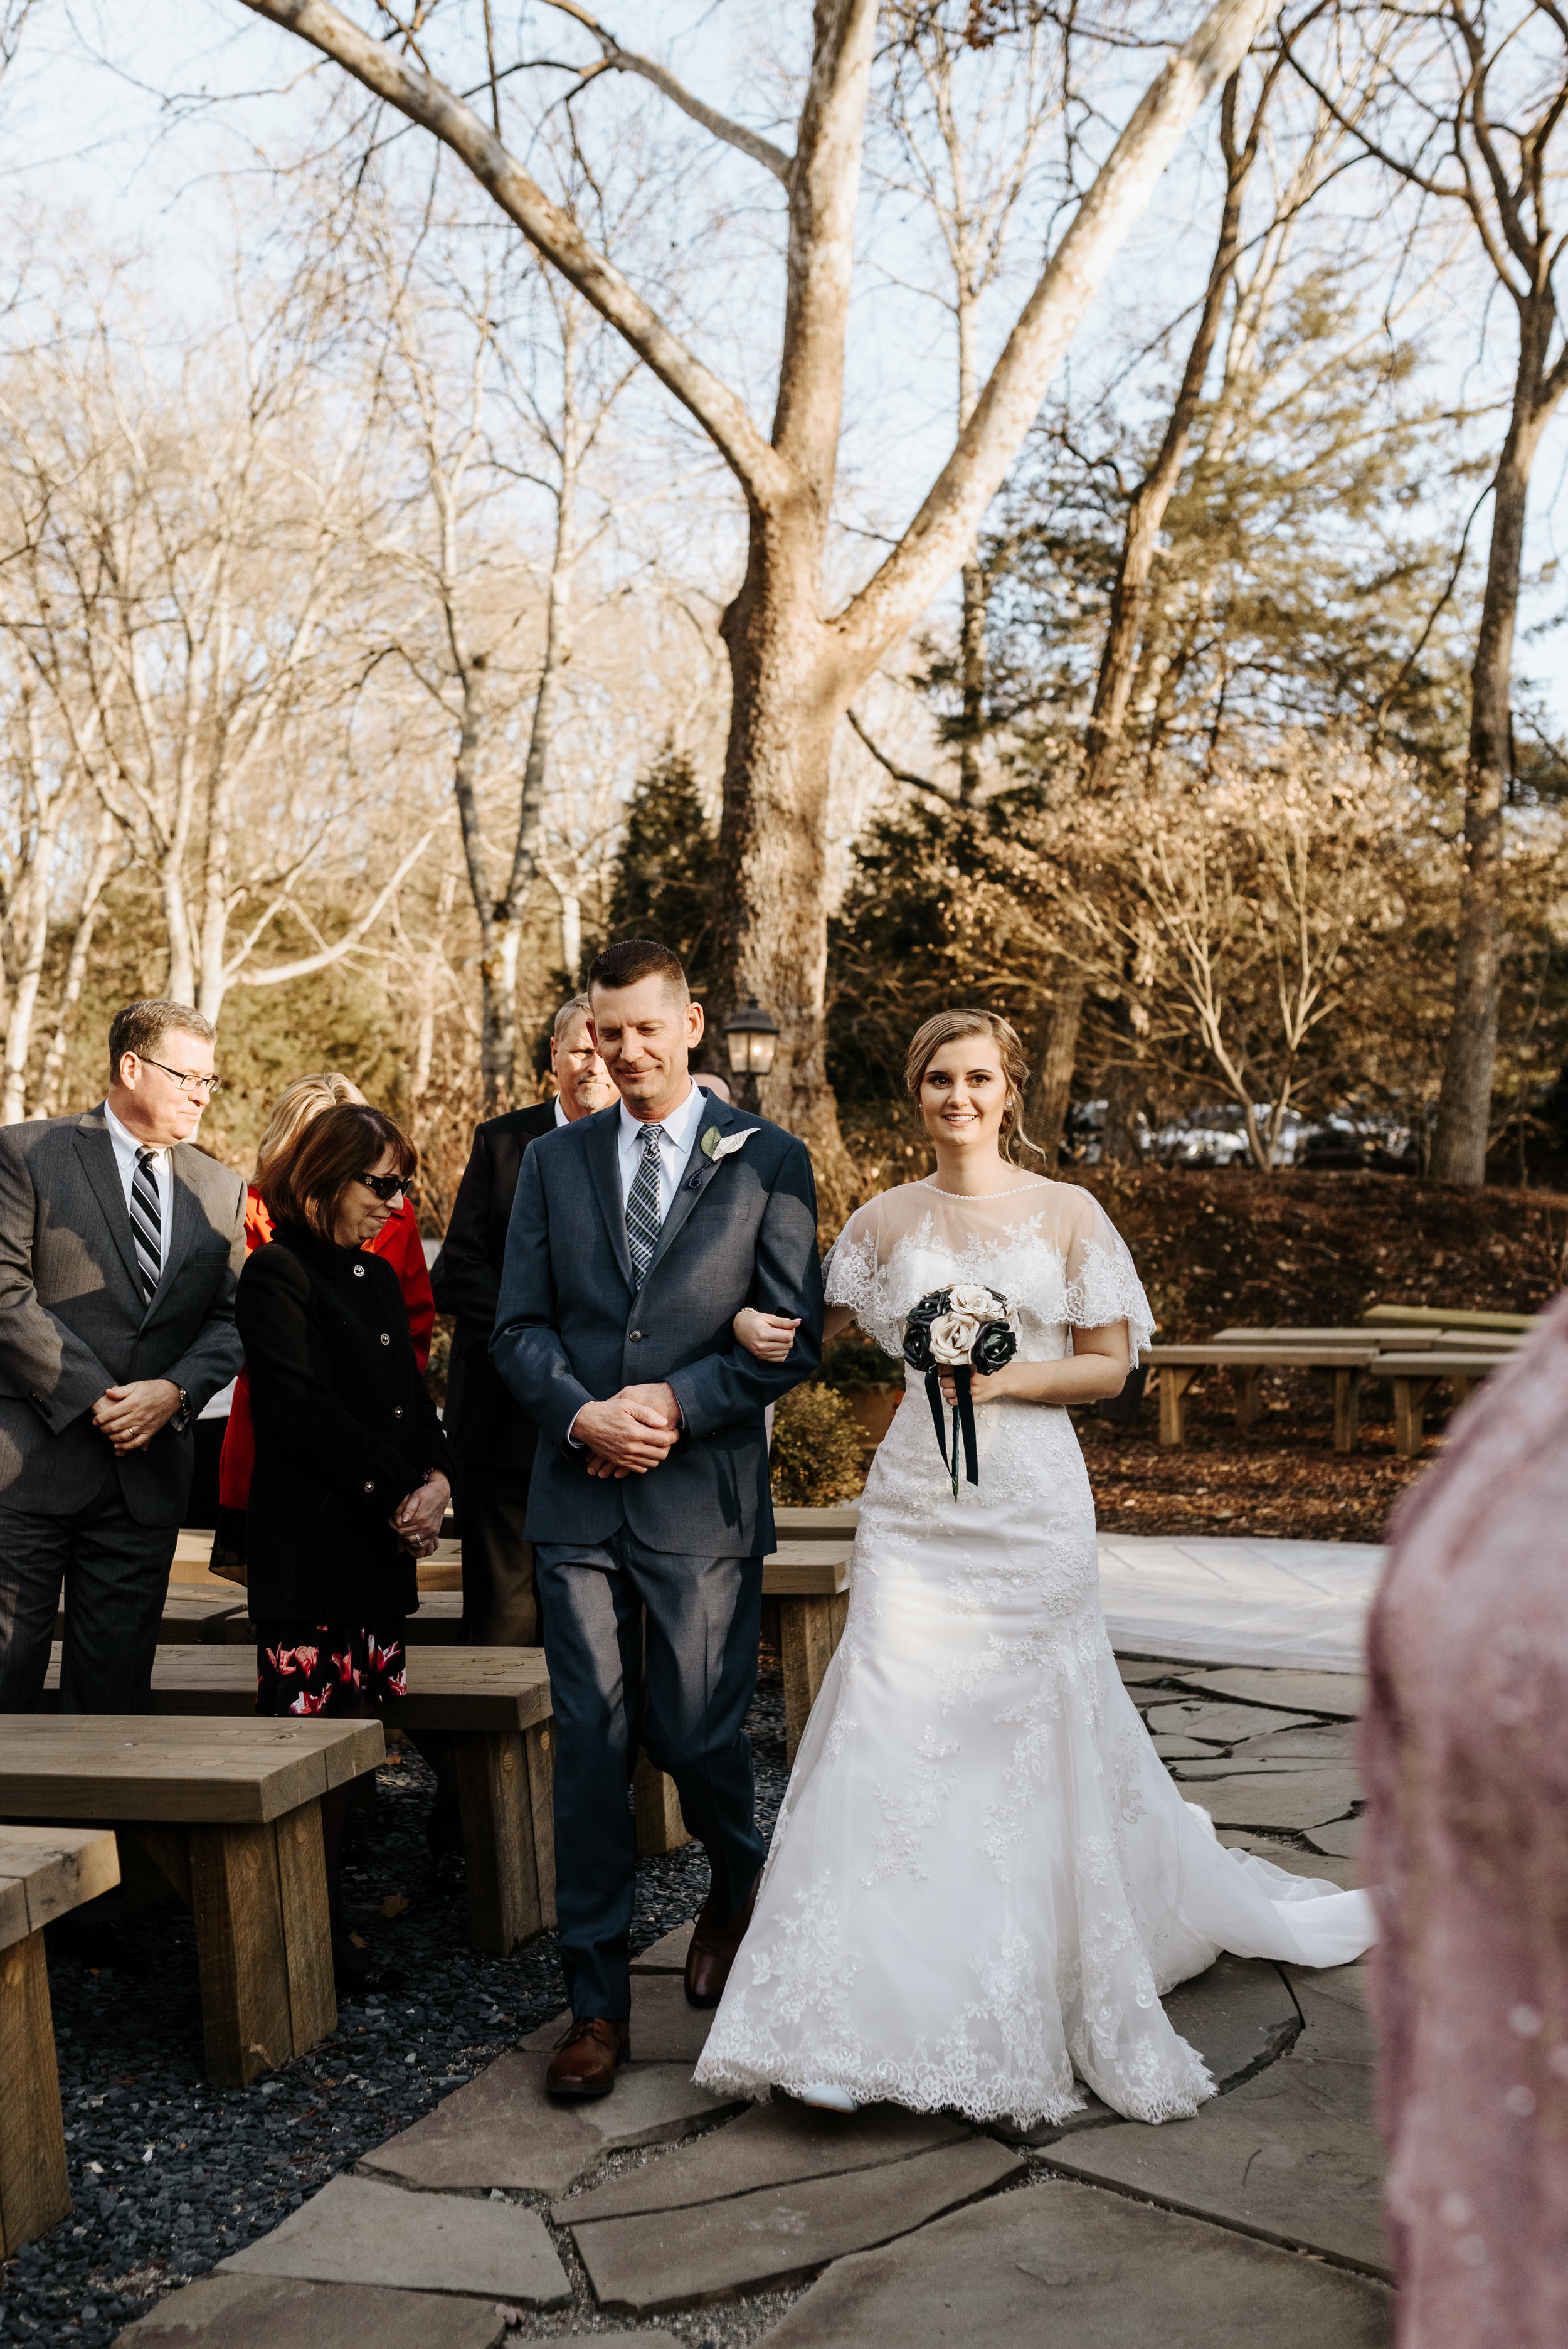 Katie-Stephen-Wedding-Mill-at-Fine-Creek-Richmond-Wedding-Photography-by-V-4721.jpg